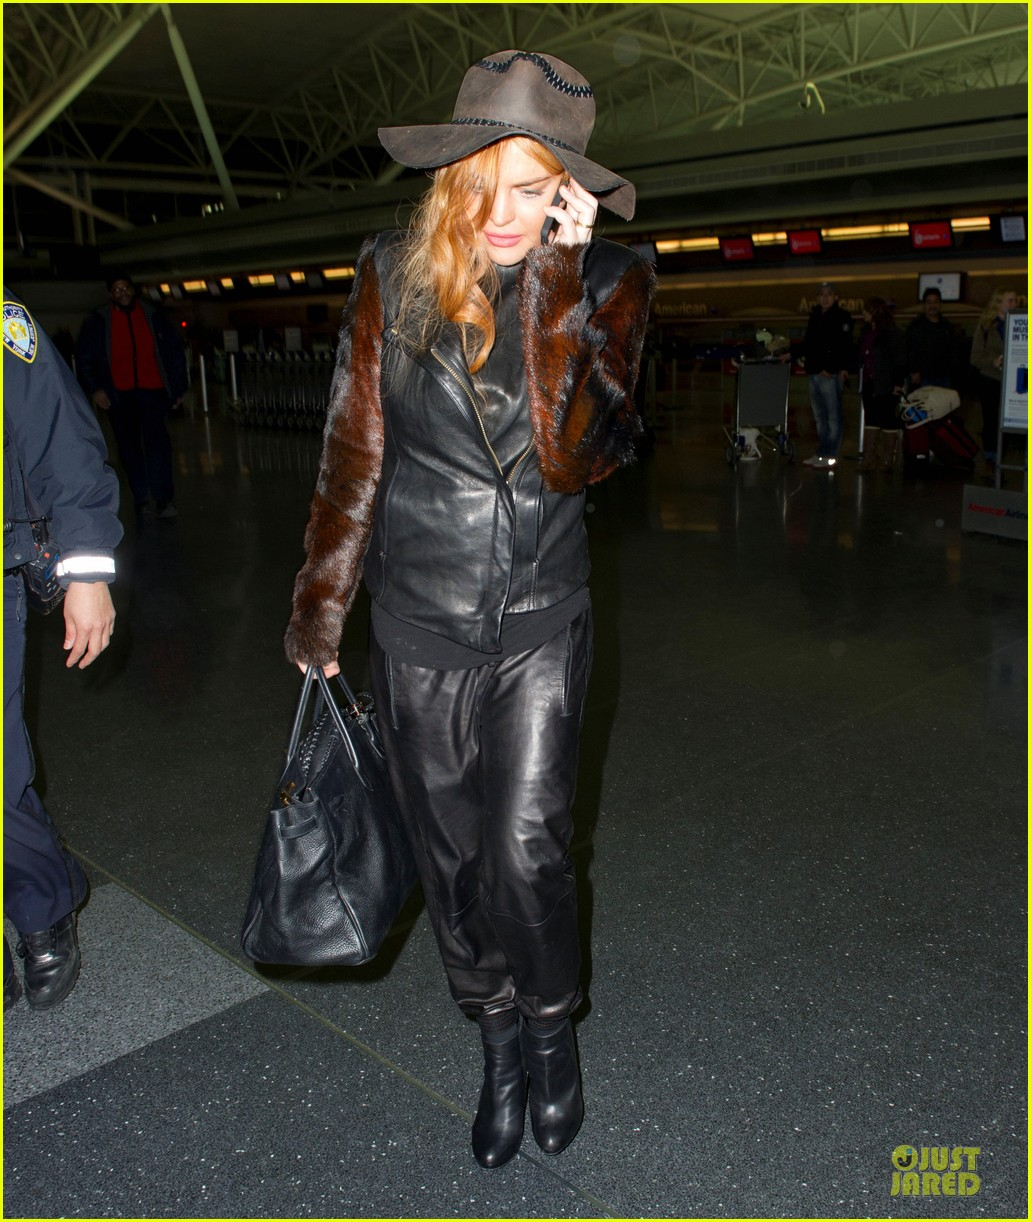 lindsay lohan departs jfk airport for court appearance 012801086